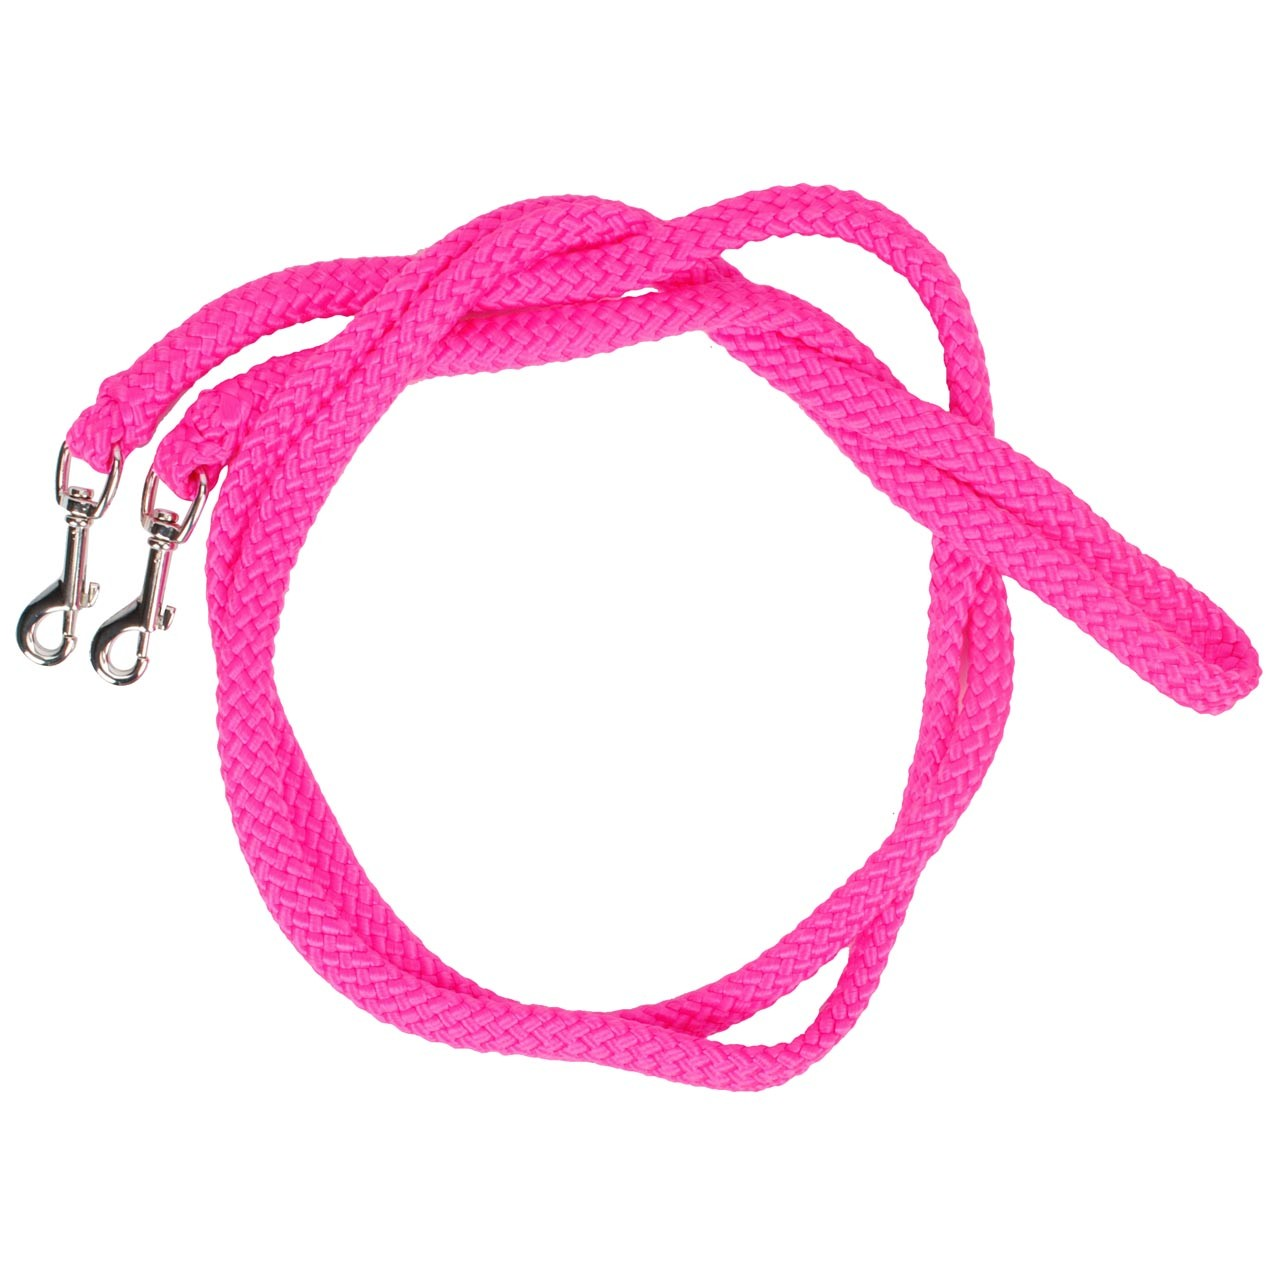 Horse Charms touwteugels fuchsia maat:m